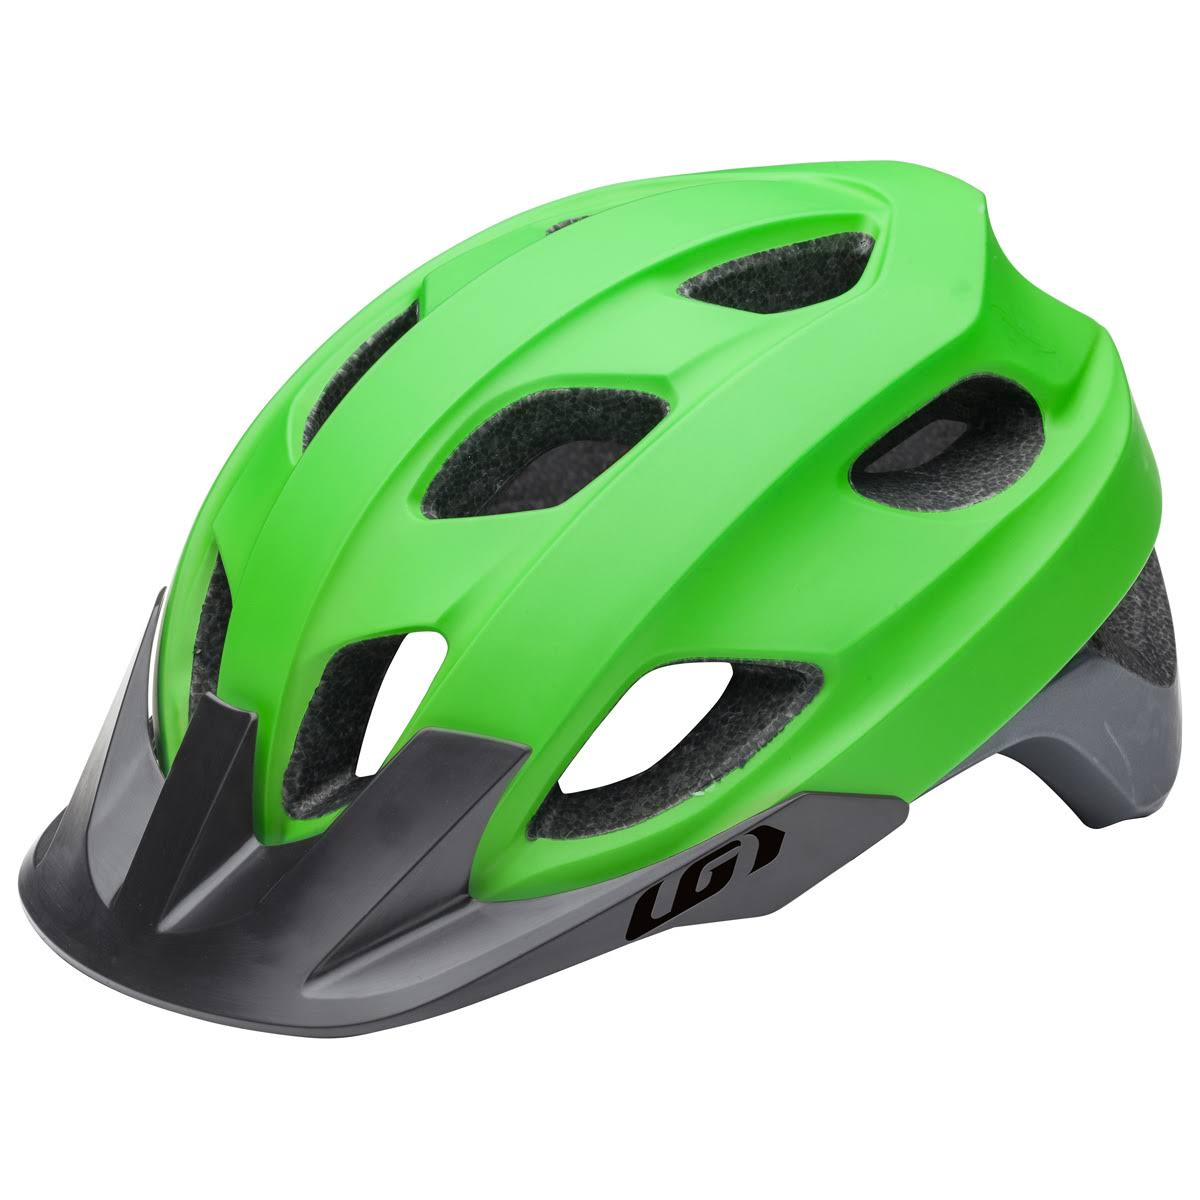 Louis Garneau Raid RTR Cycling Helmet - Matte Green, Large